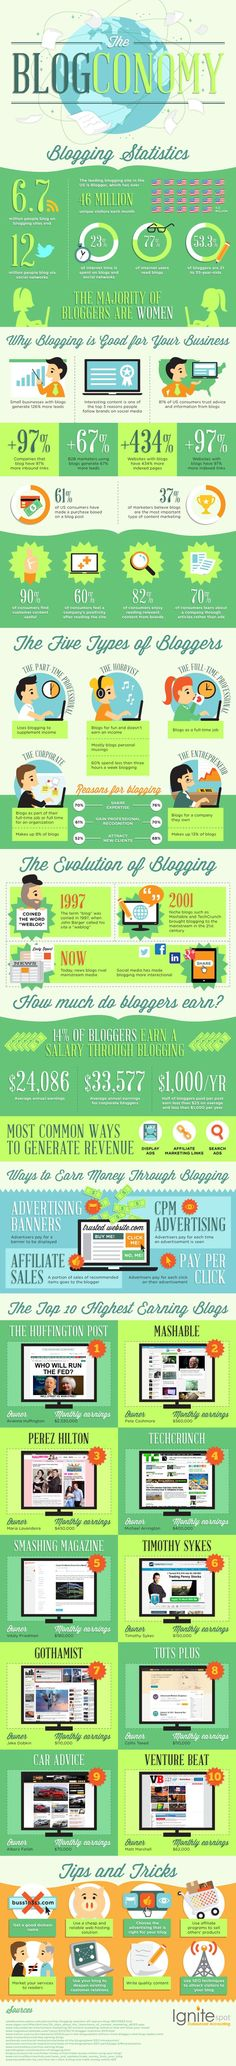 Why Blogging Is The Best Marketing Tool You Will Find #infographic